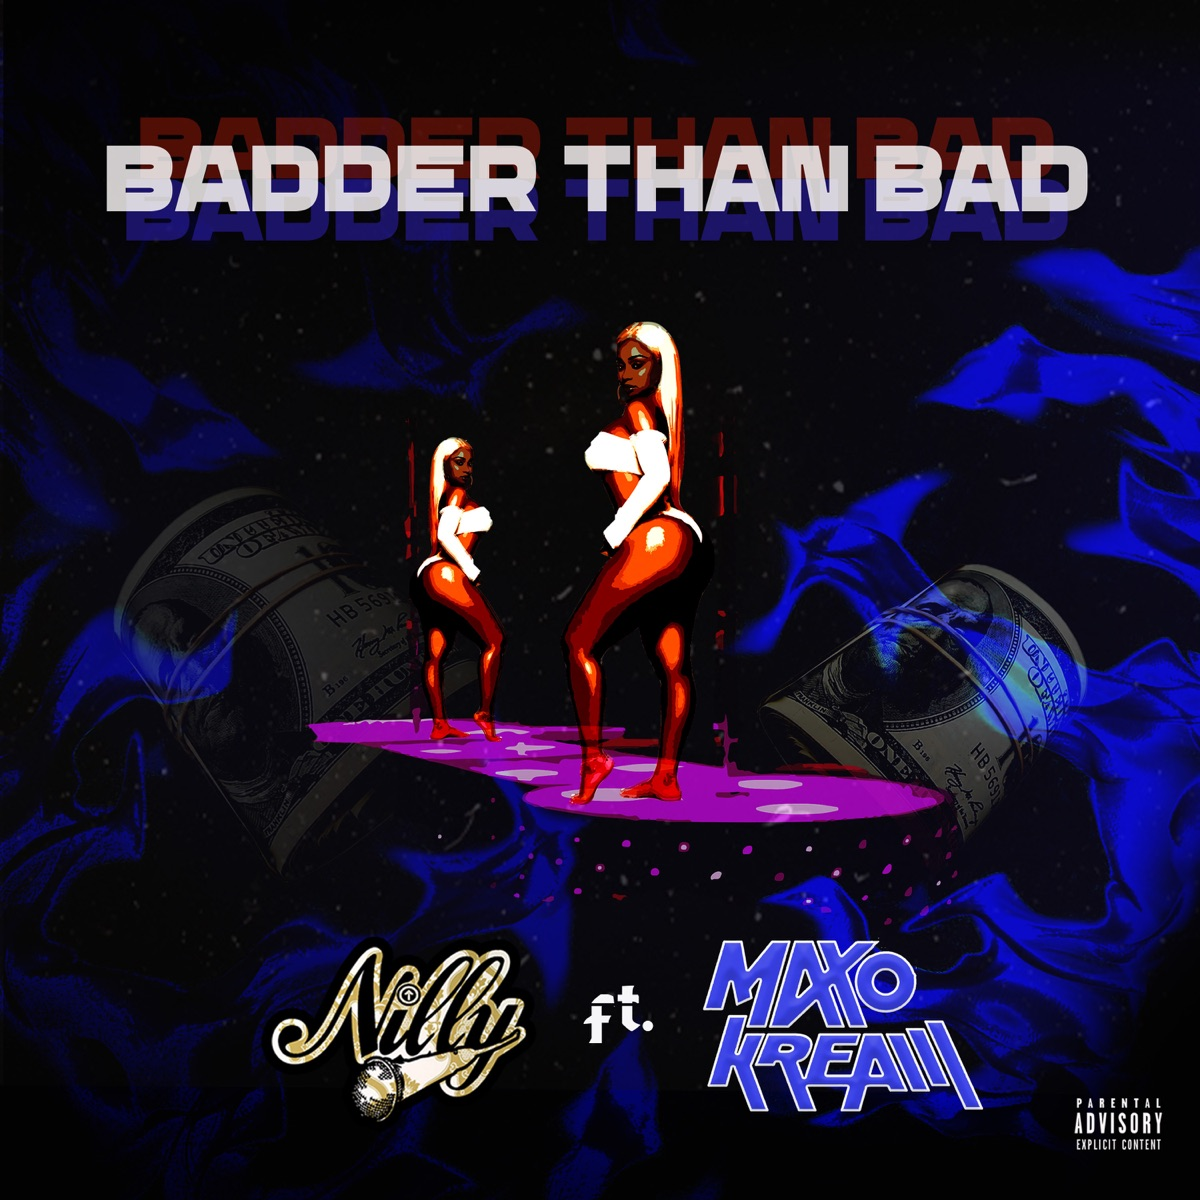 Art for Badder Than Bad (feat. Maxo Kream) by Nilly